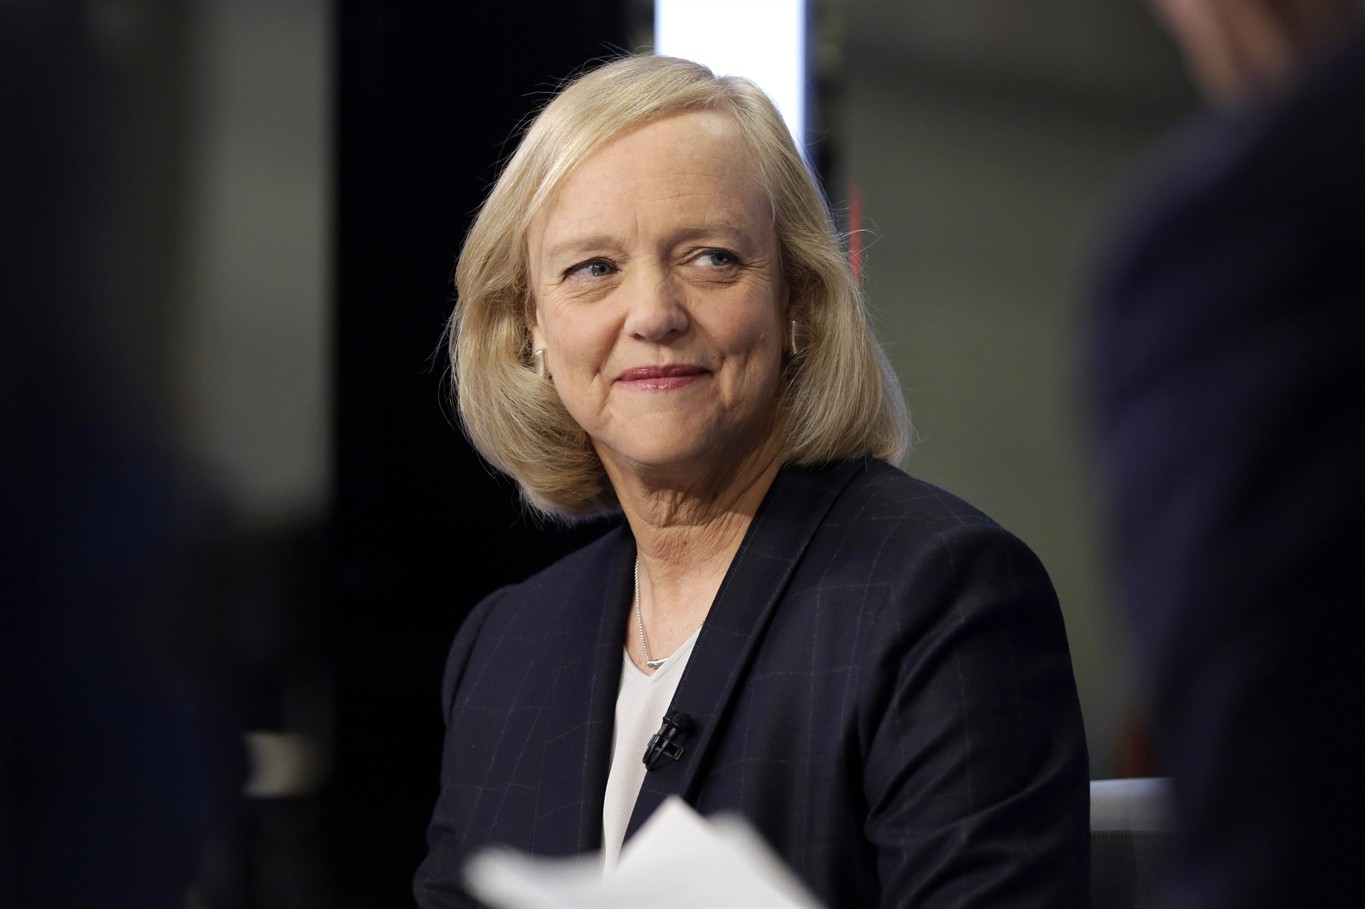 Meg Whitman Steps Down As CEO of Hewlett Packard